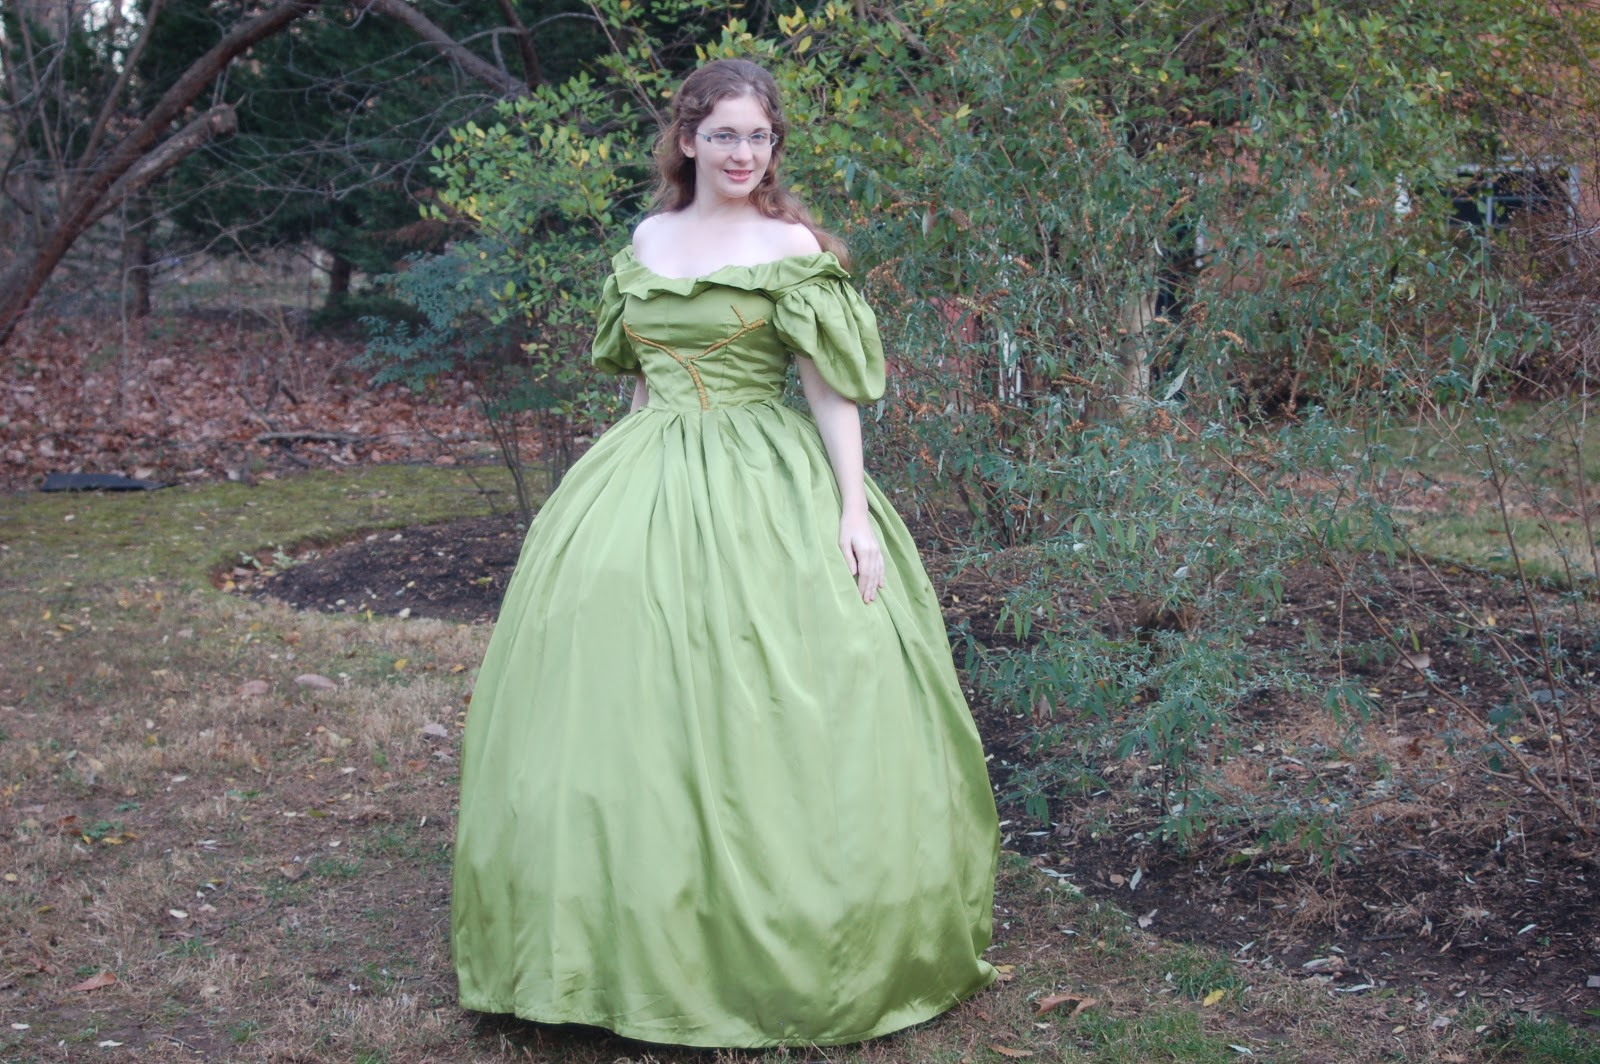 Venerable Fashions: Old Costume: Labyrinth Ballgown